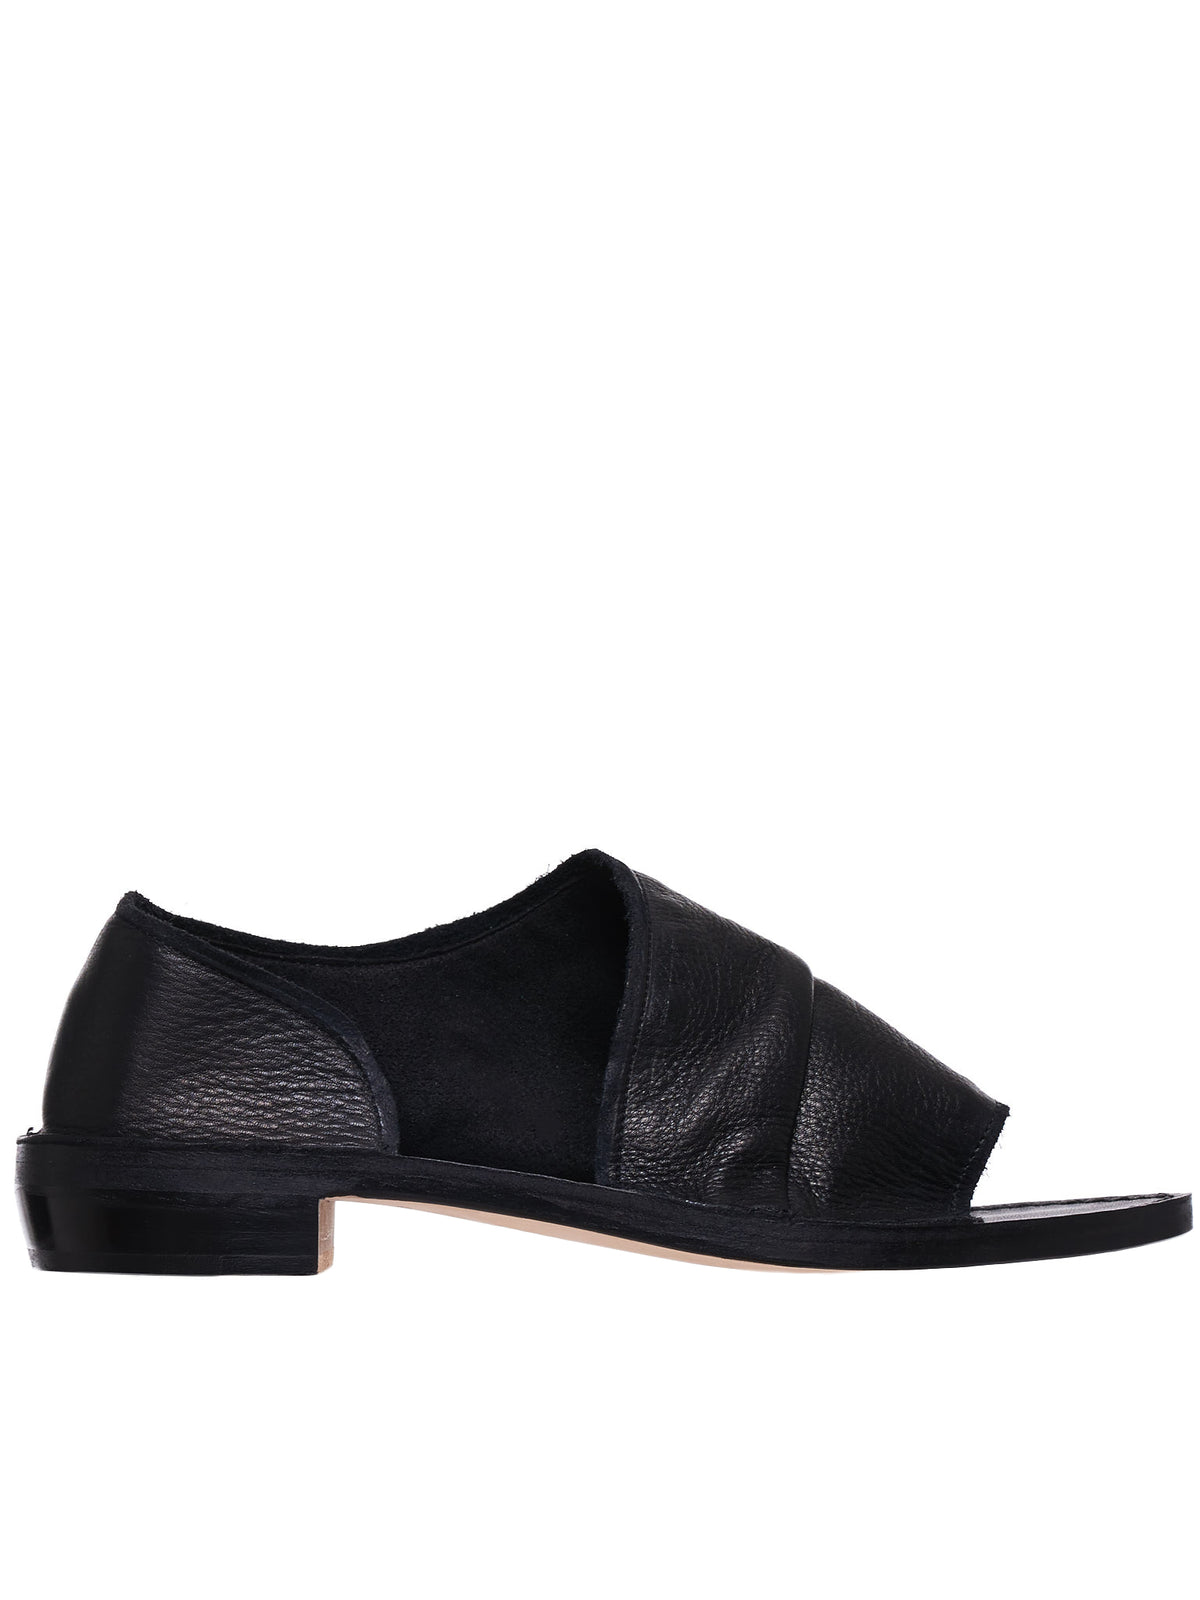 Open-Toe Flats (YS-E03-701-BLACK)